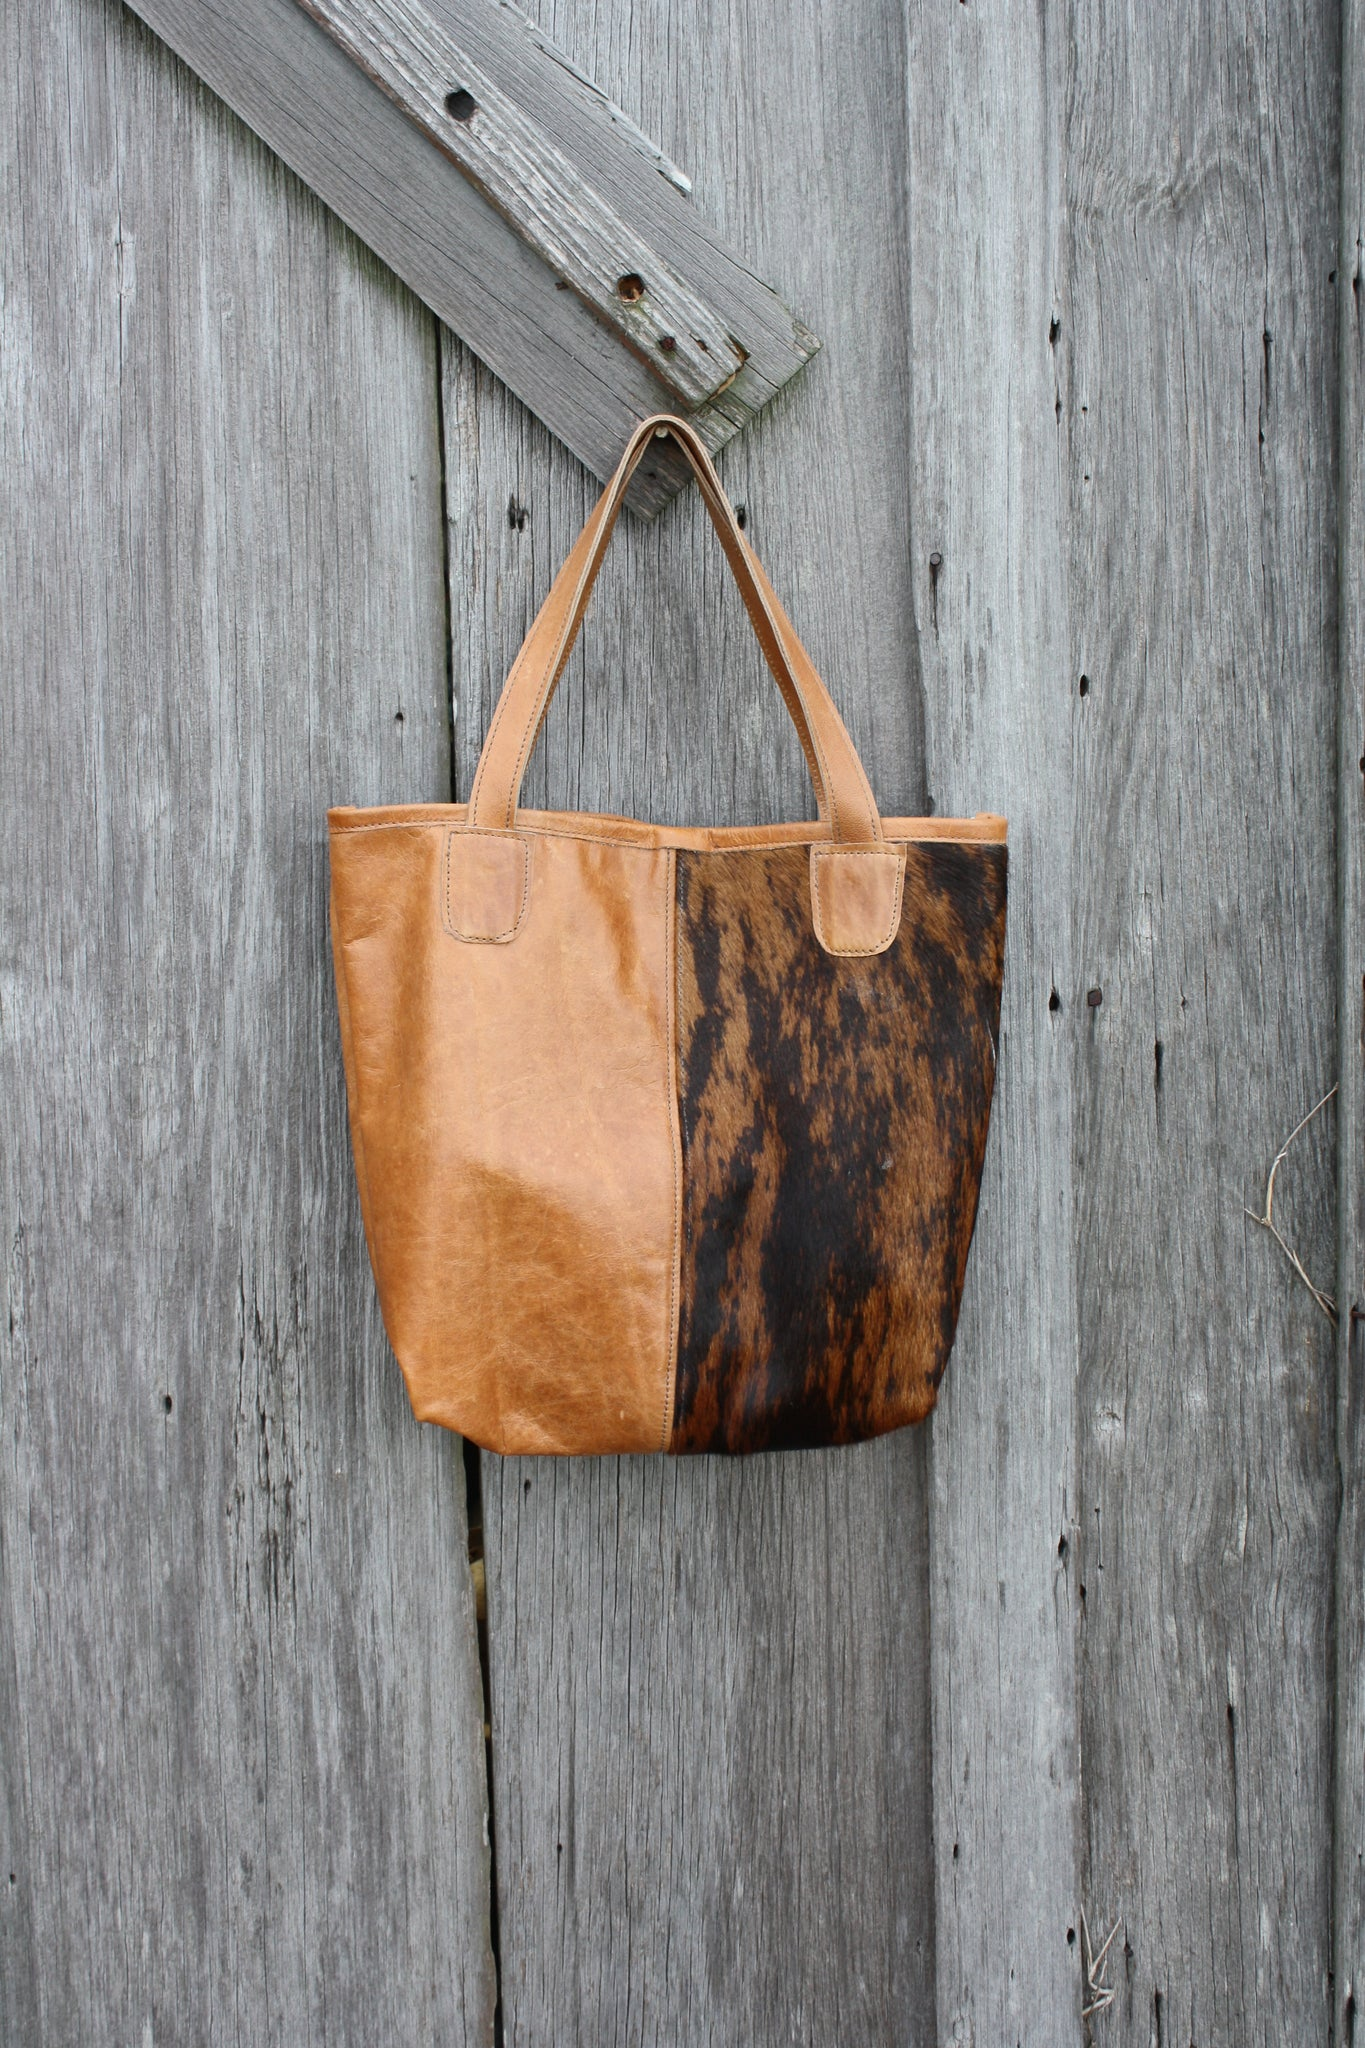 The Divide Tote